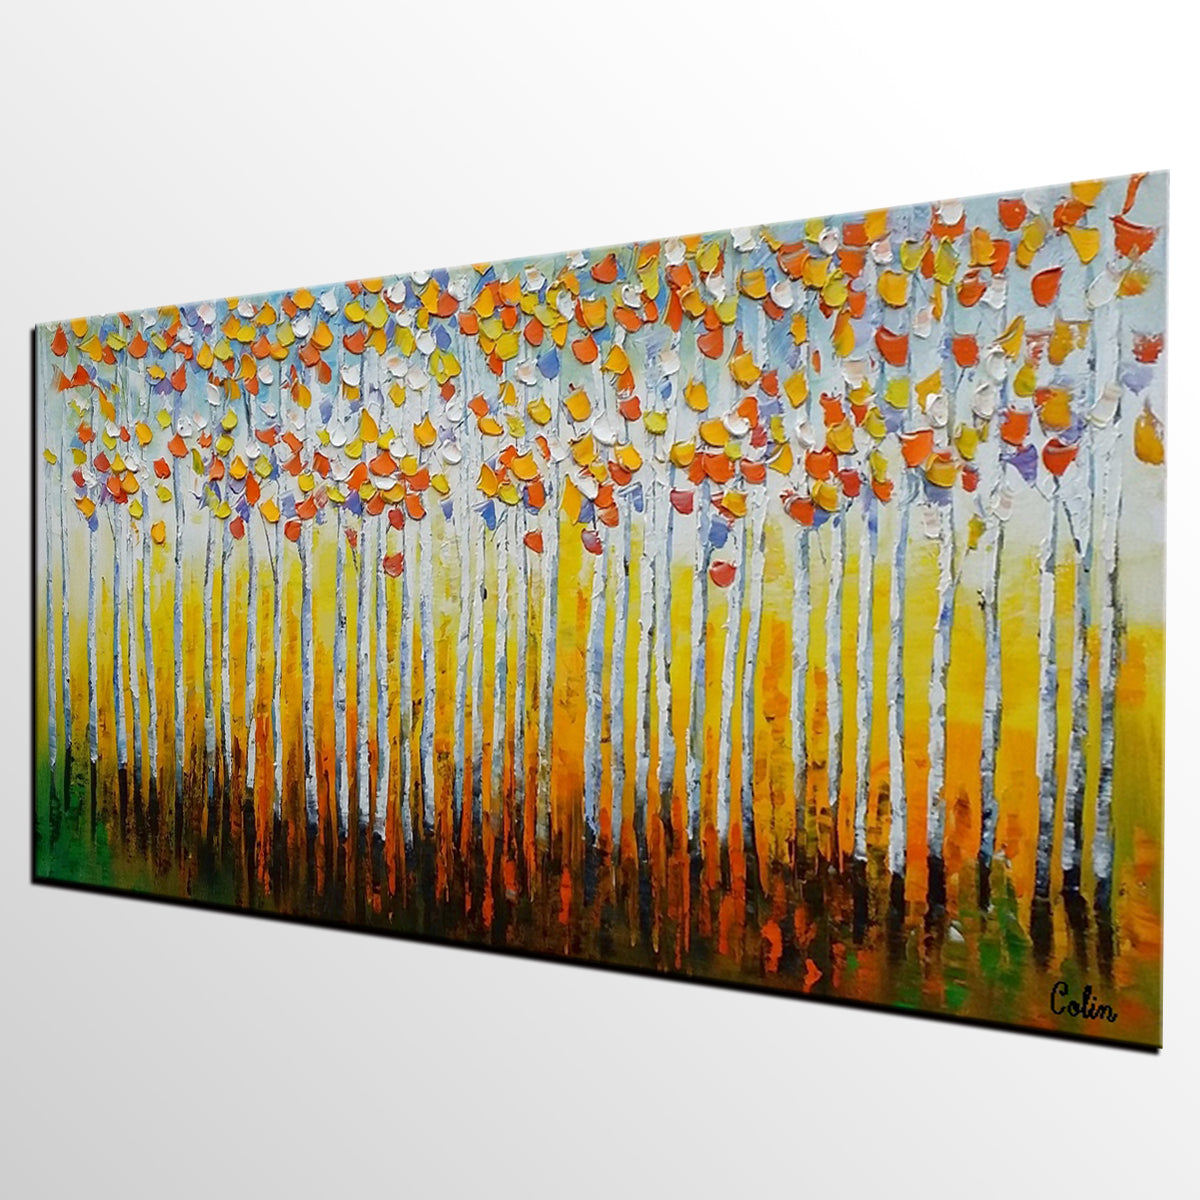 Birch Tree Painting, Landscape Painting, Oil Painting, Abstract Painting